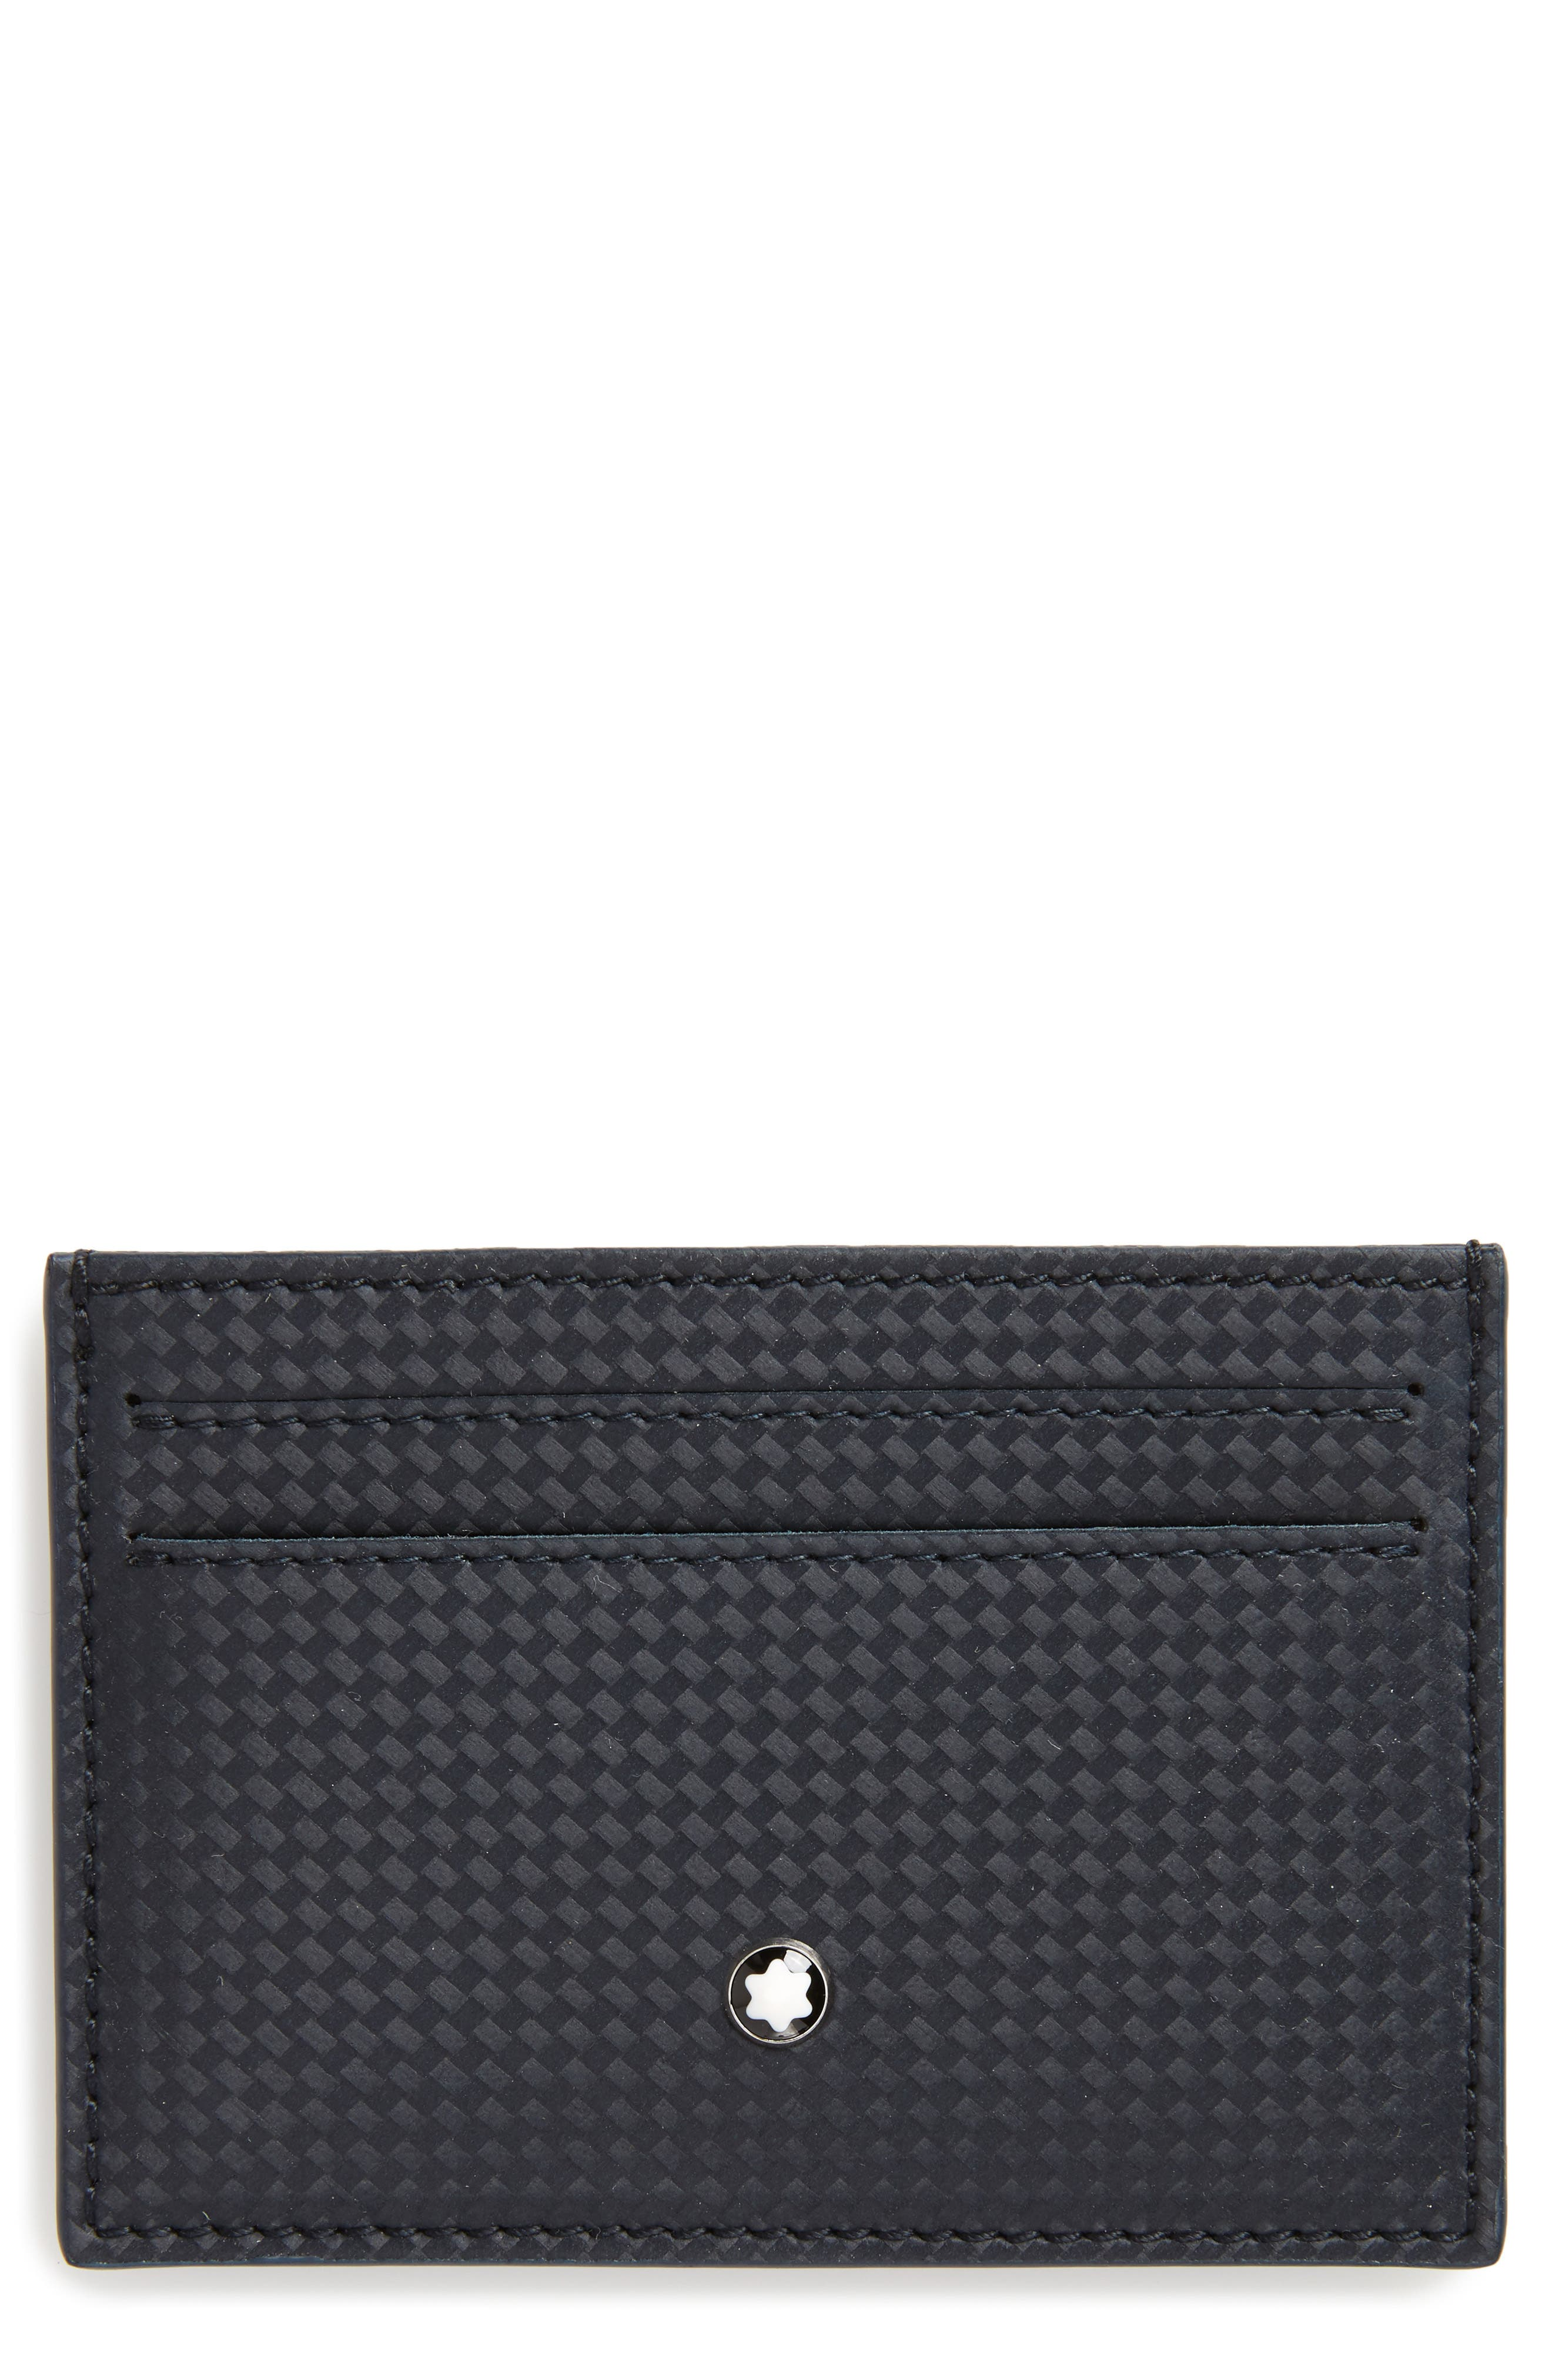 MONTBLANC, Extreme Leather Card Case, Main thumbnail 1, color, 400